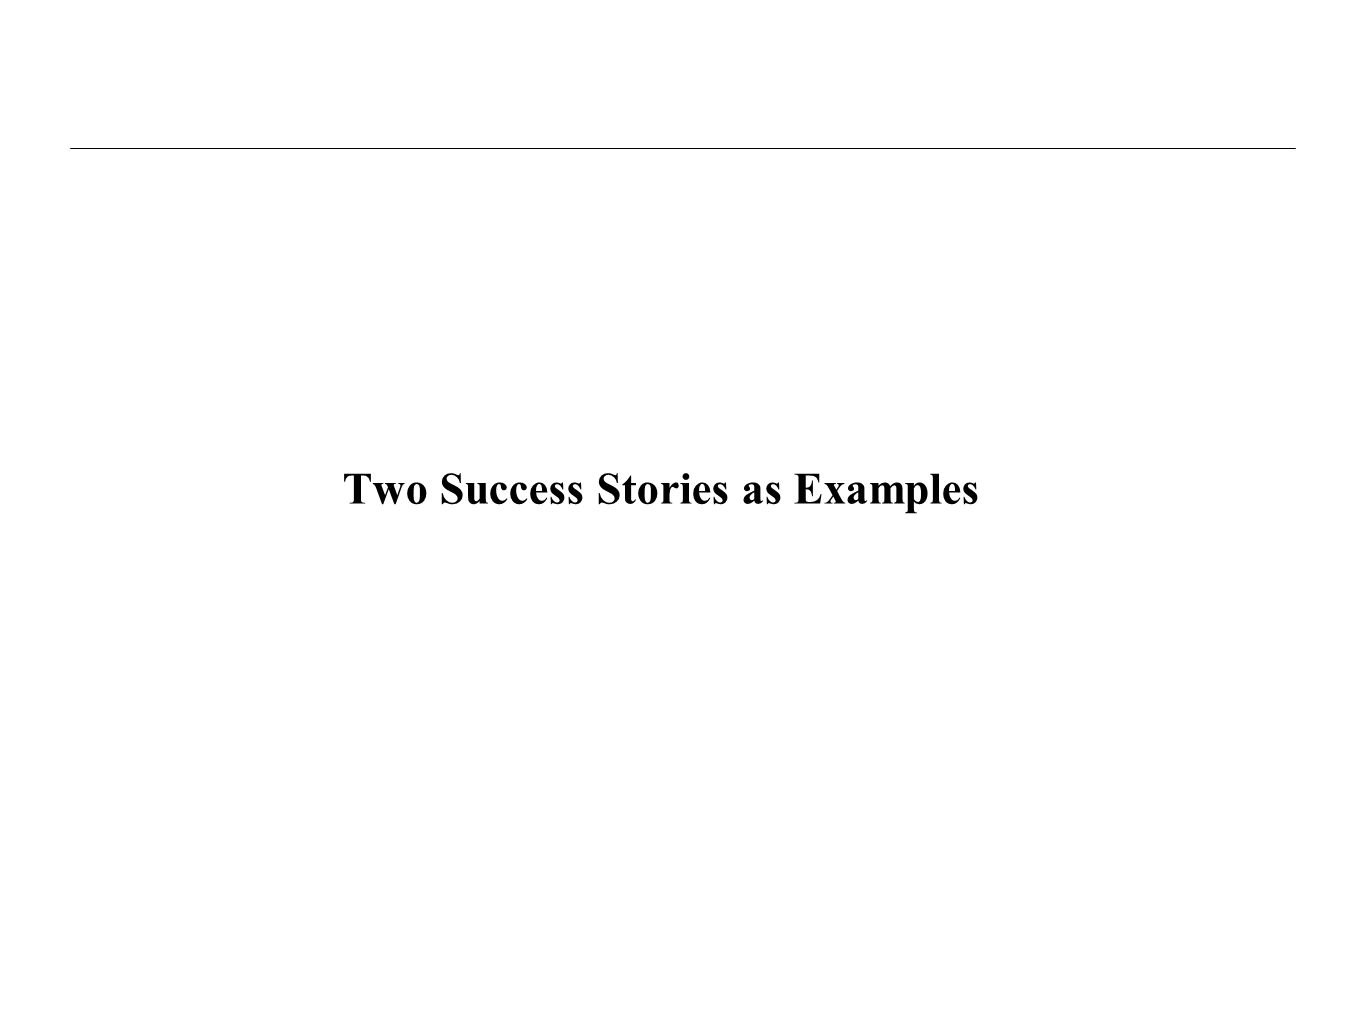 Two Success Stories as Examples